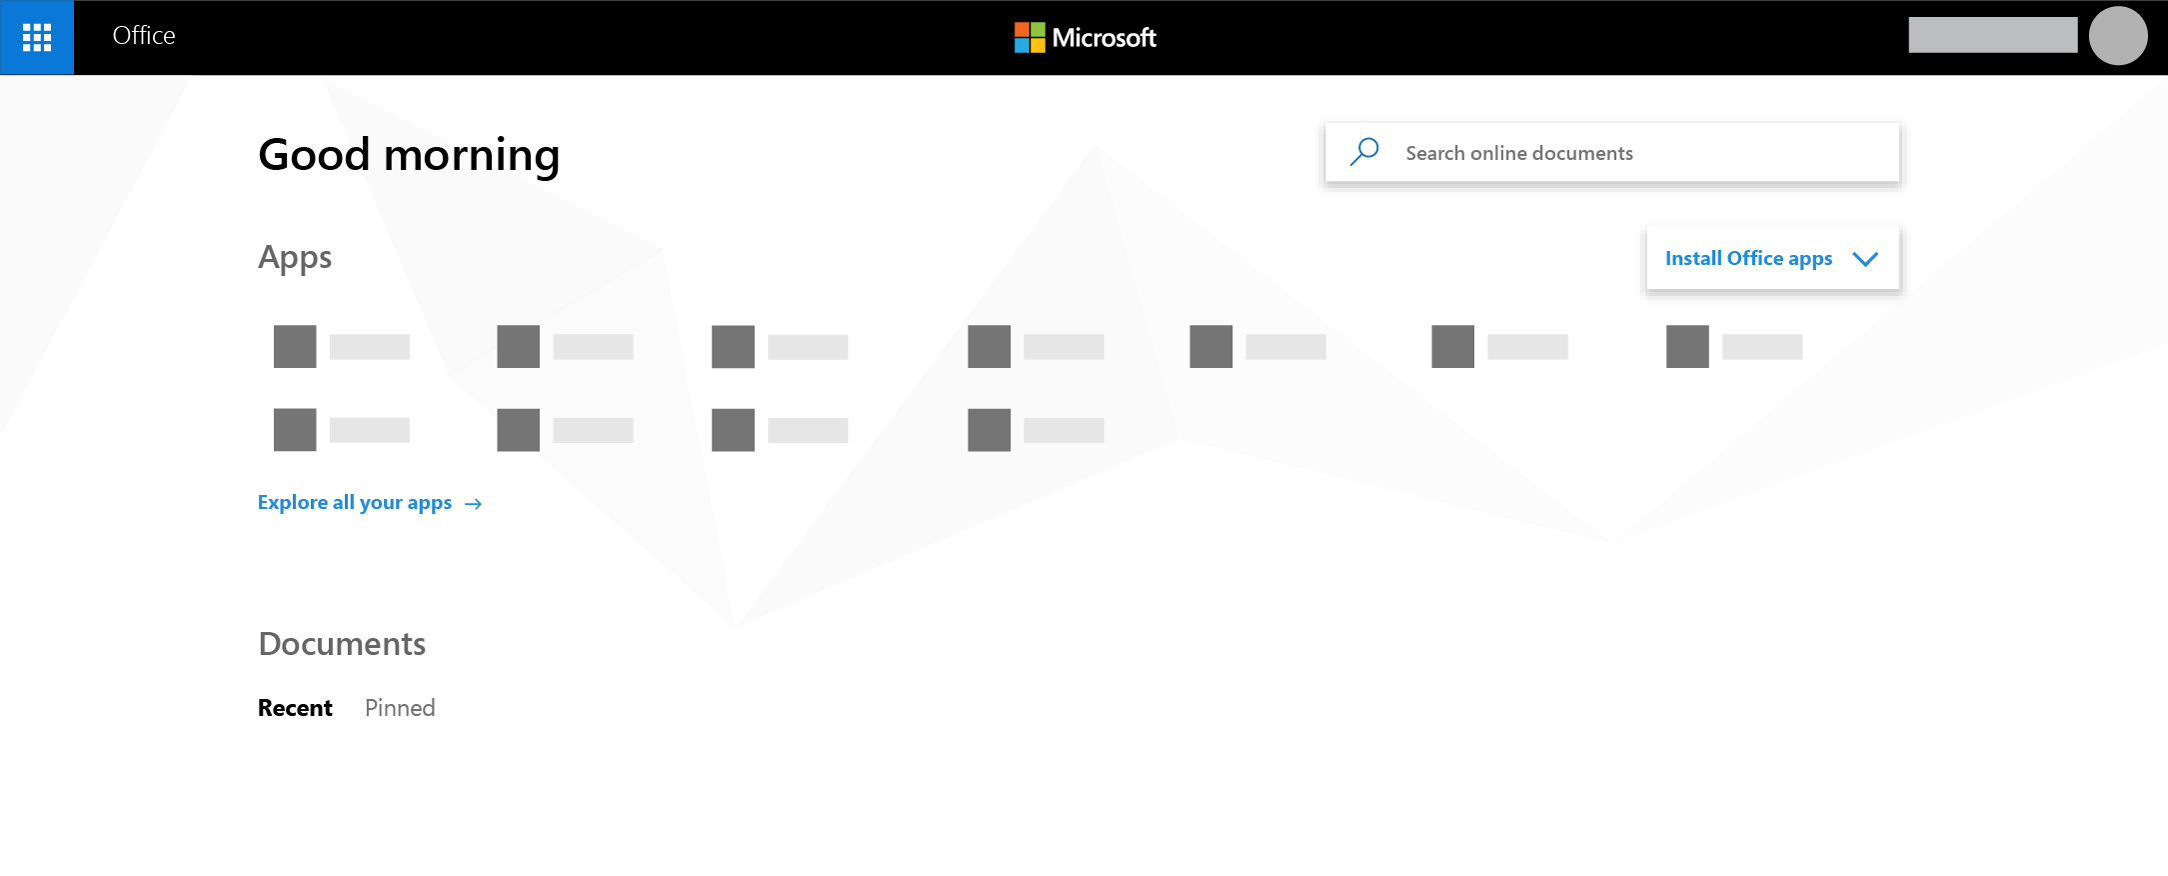 The Office 365 home page